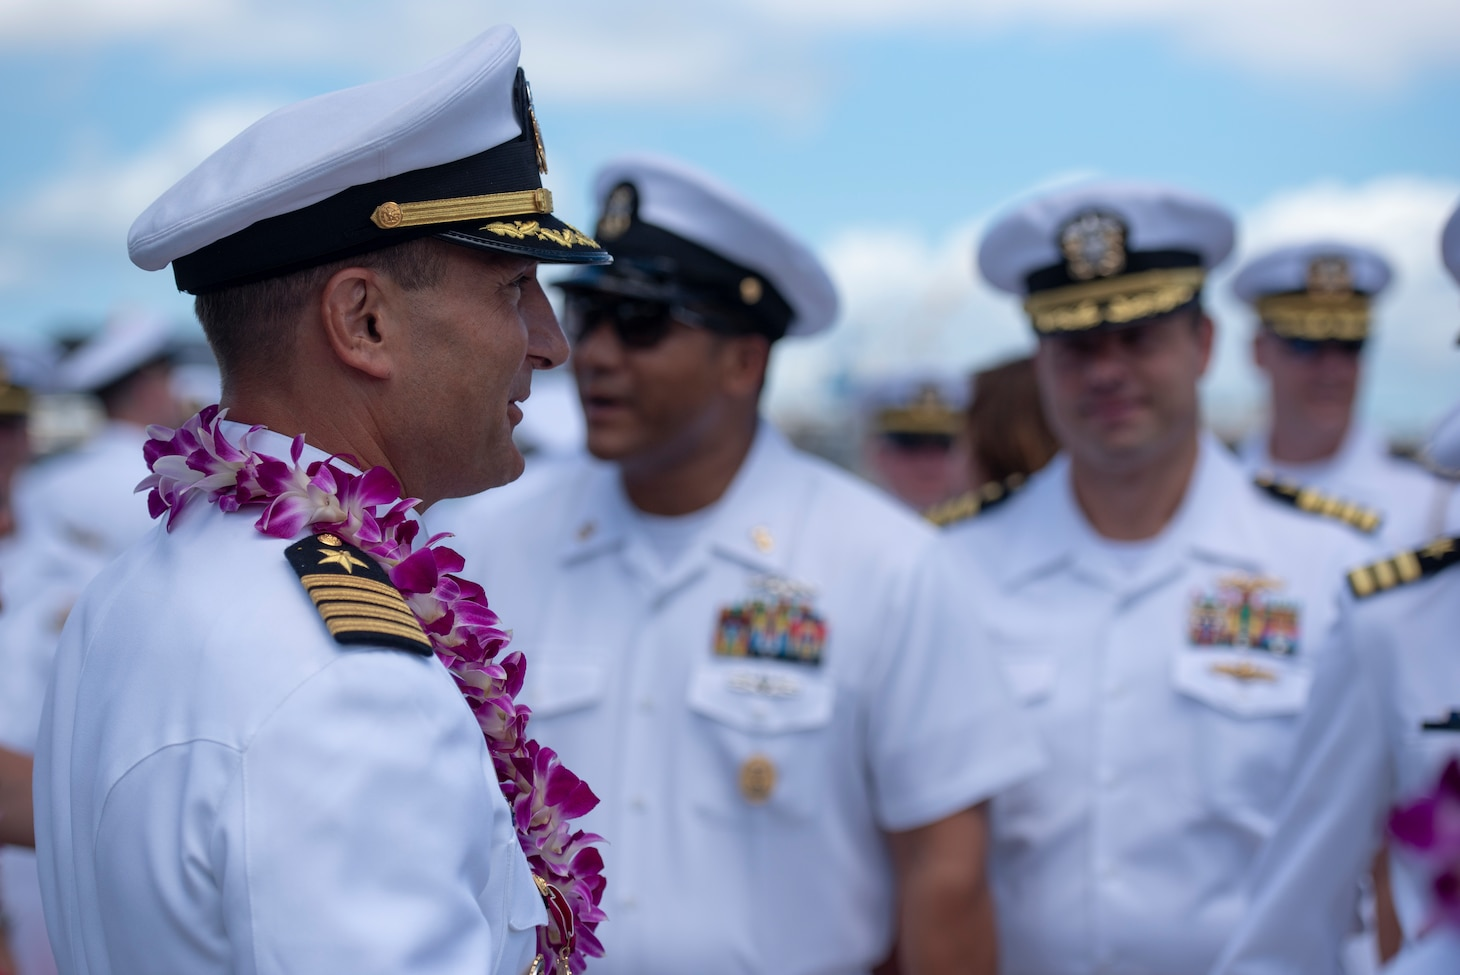 Guests, from the Submarine Squadron 7 change of command and retirement ceremony, bid farewell to Capt. Robert A. Roncska (Ret.) on the submarine piers in Joint Base Pearl Harbor-Hickam, June 22. (U.S. Navy photo by Mass Communication Specialist 2nd Class Michael H. Lee/Released)